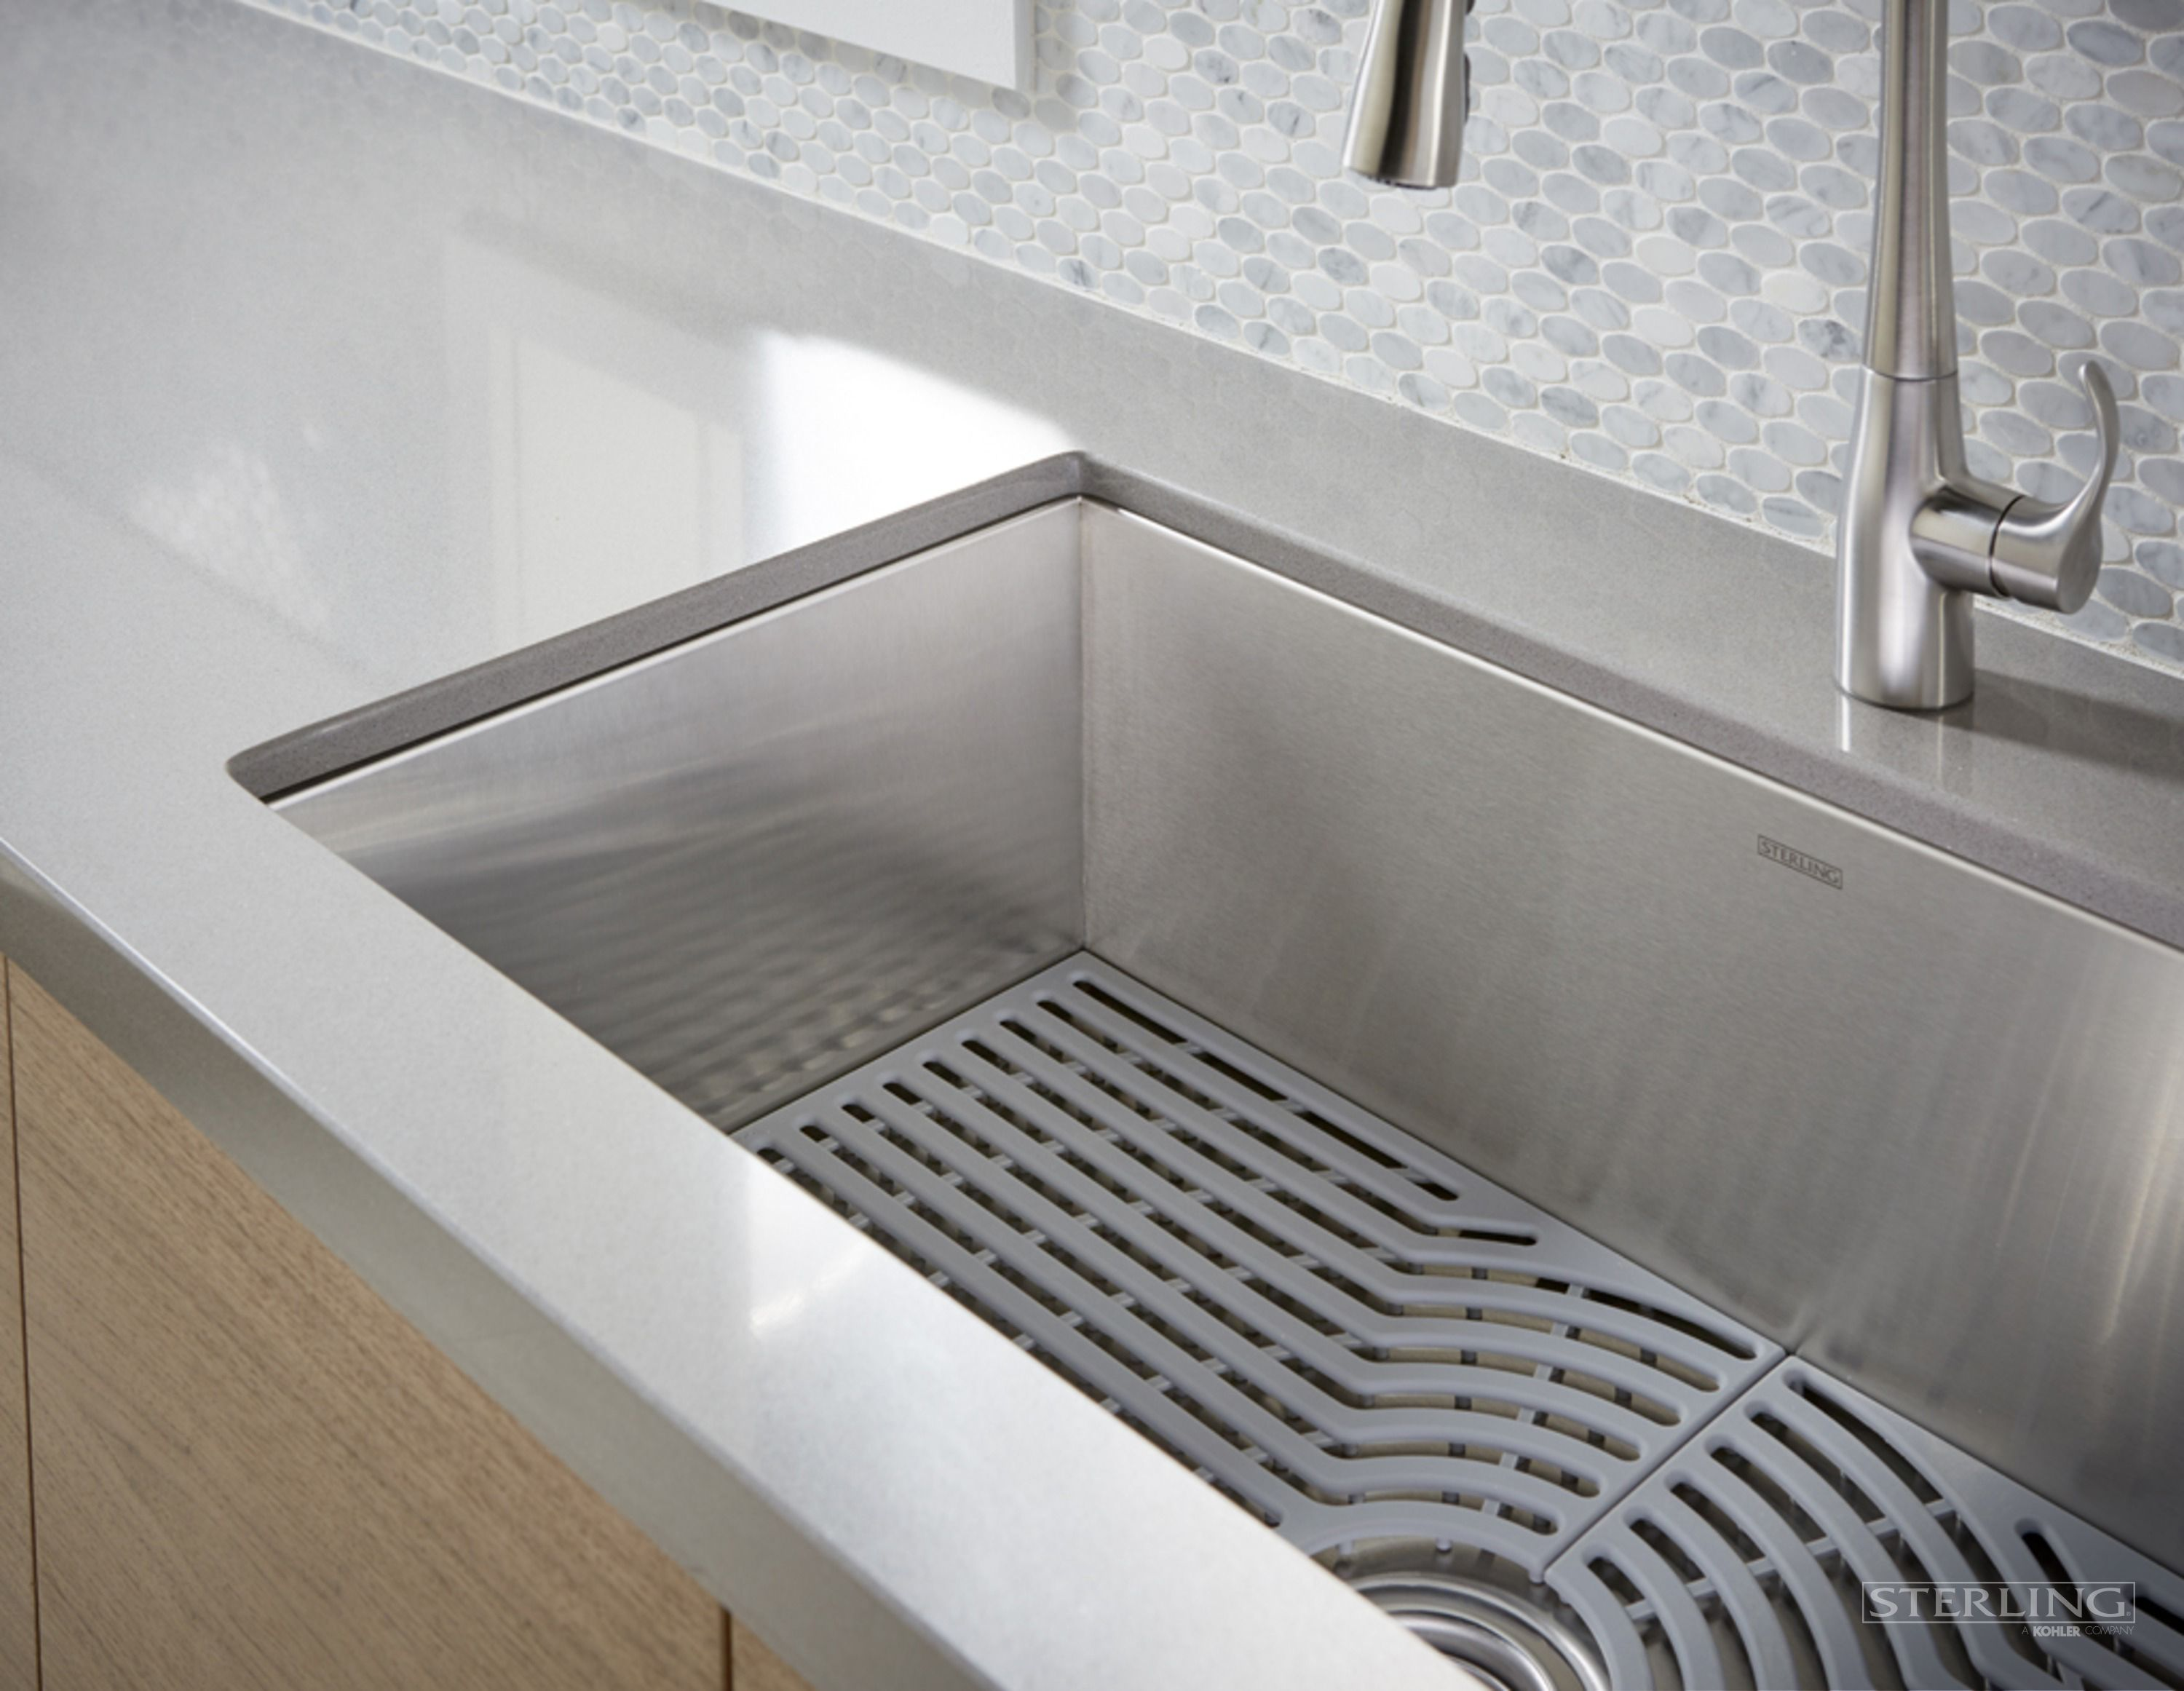 Kitchen Sink Appliances copper kitchen sink with stainless steel appliances Explore Available Accessories For Your Stainless Steel Ludington Sink Including A Contemporary Silicone Mat And